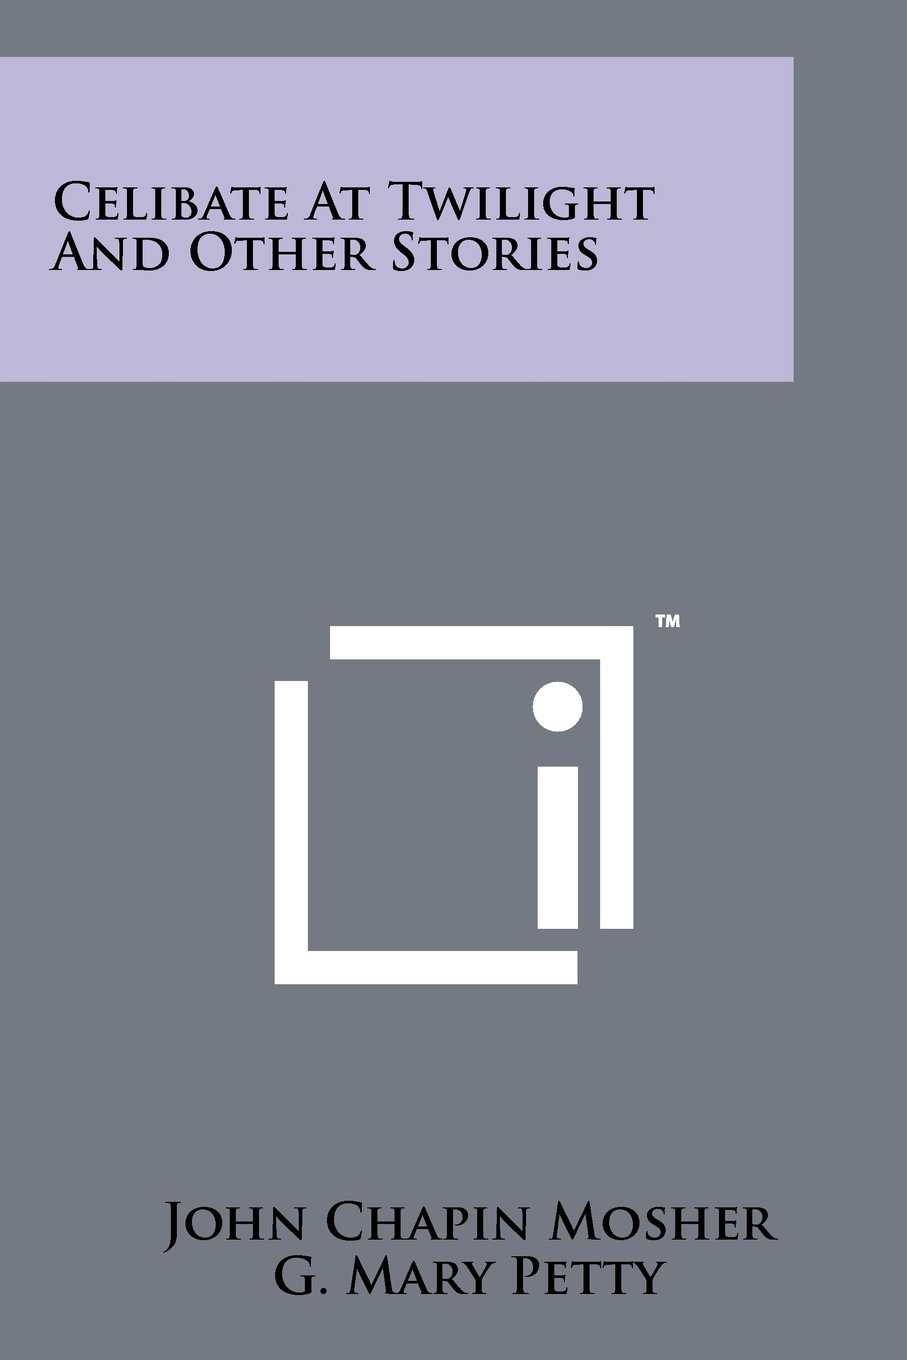 Download Celibate at Twilight and Other Stories PDF